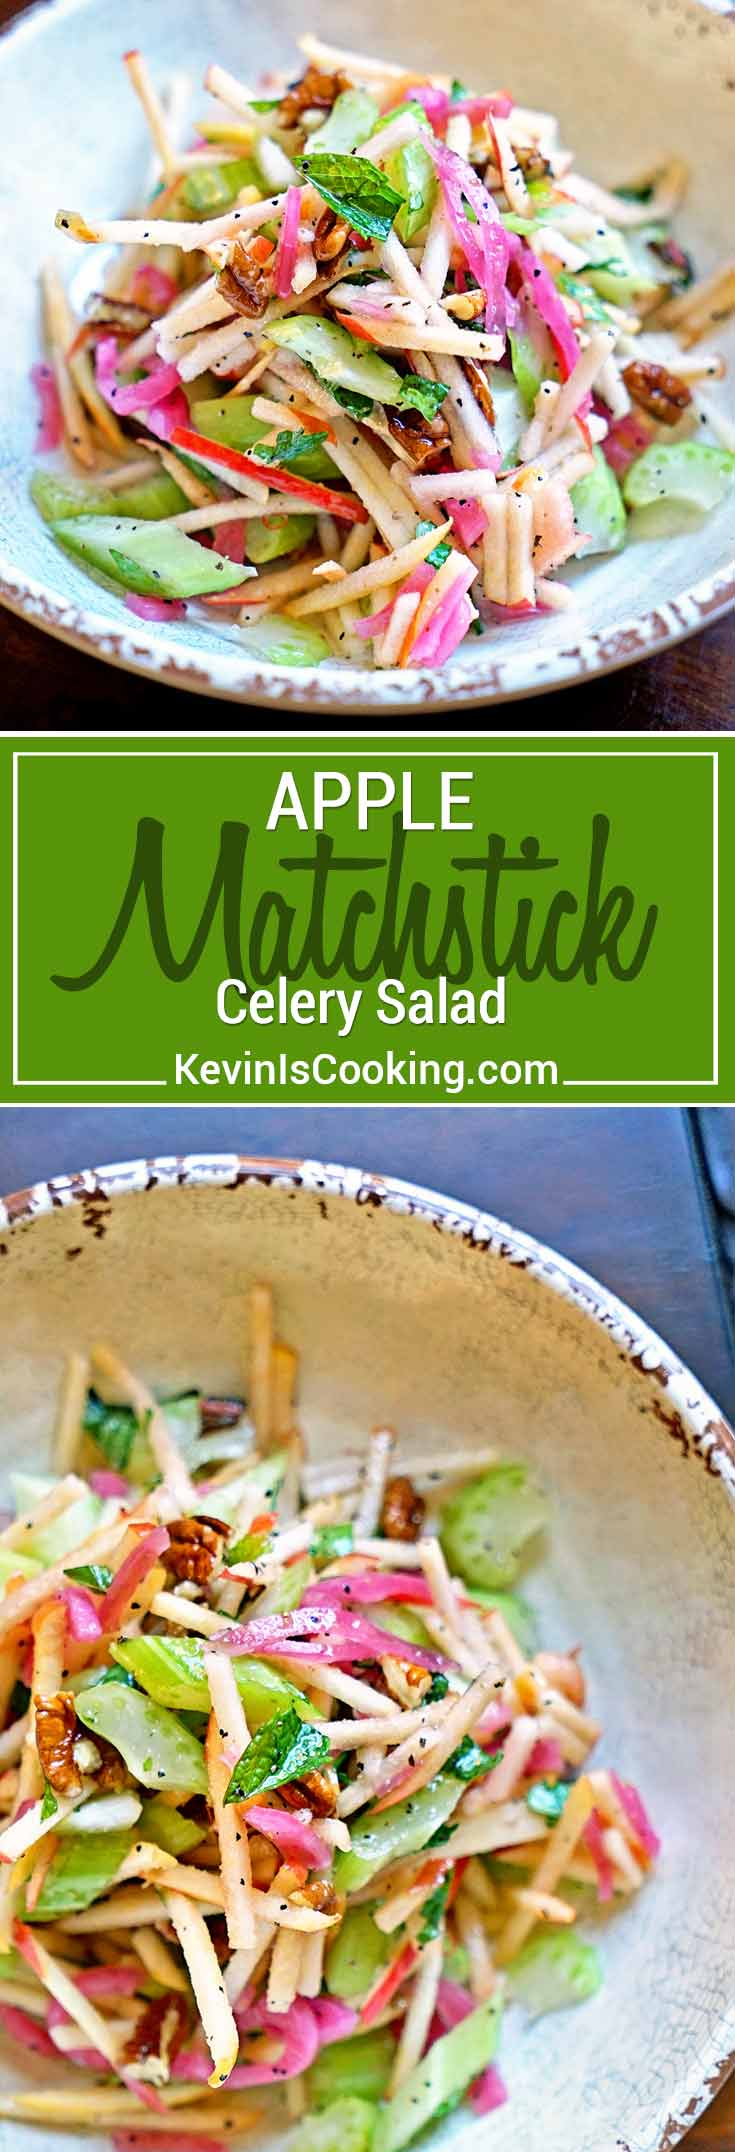 This Apple and Celery Salad comes together quickly with fresh, cold apples, celery, pecans, mint, cilantro and basil tossed in a light vinaigrette. So amazingly tasty!